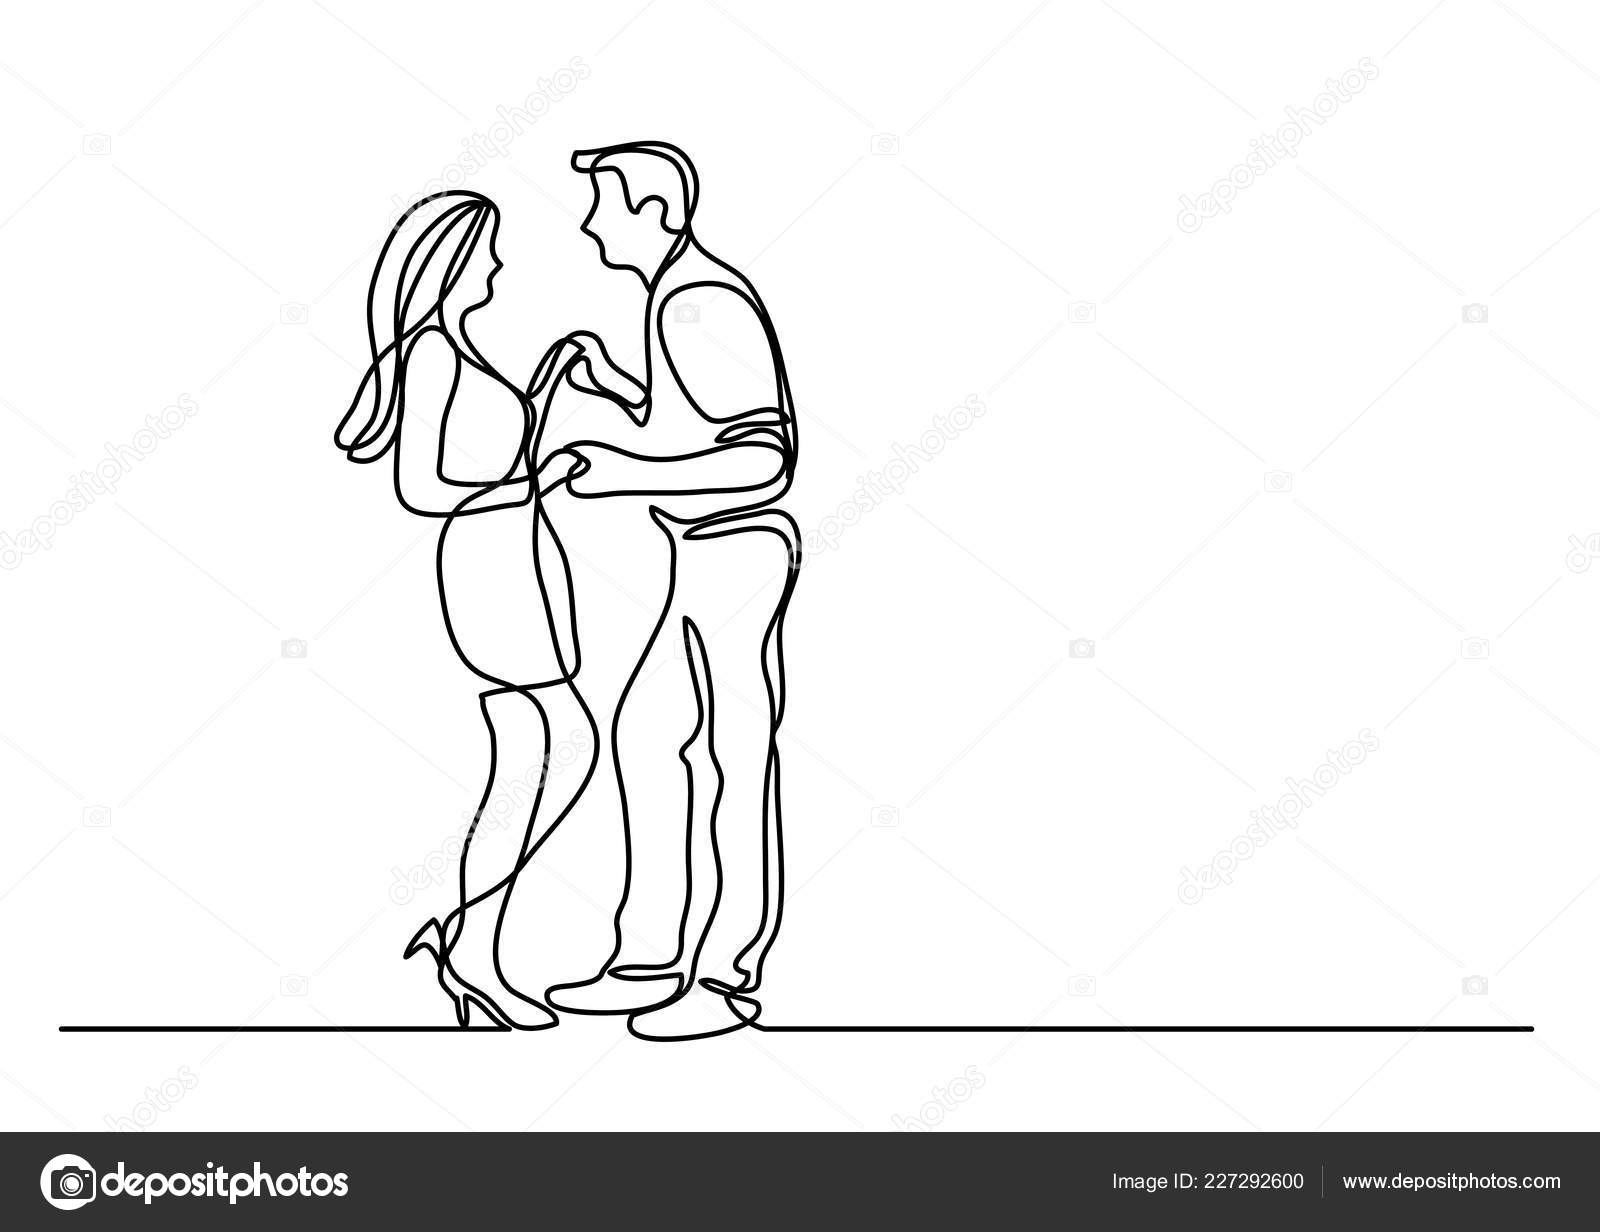 Dancing Couple Line Drawings Wiring Diagrams Circuit Board Maker Of Shenzhen Qld20 Qld China Continuous Drawing Stock Vector One Man Rh Depositphotos Com Black Base